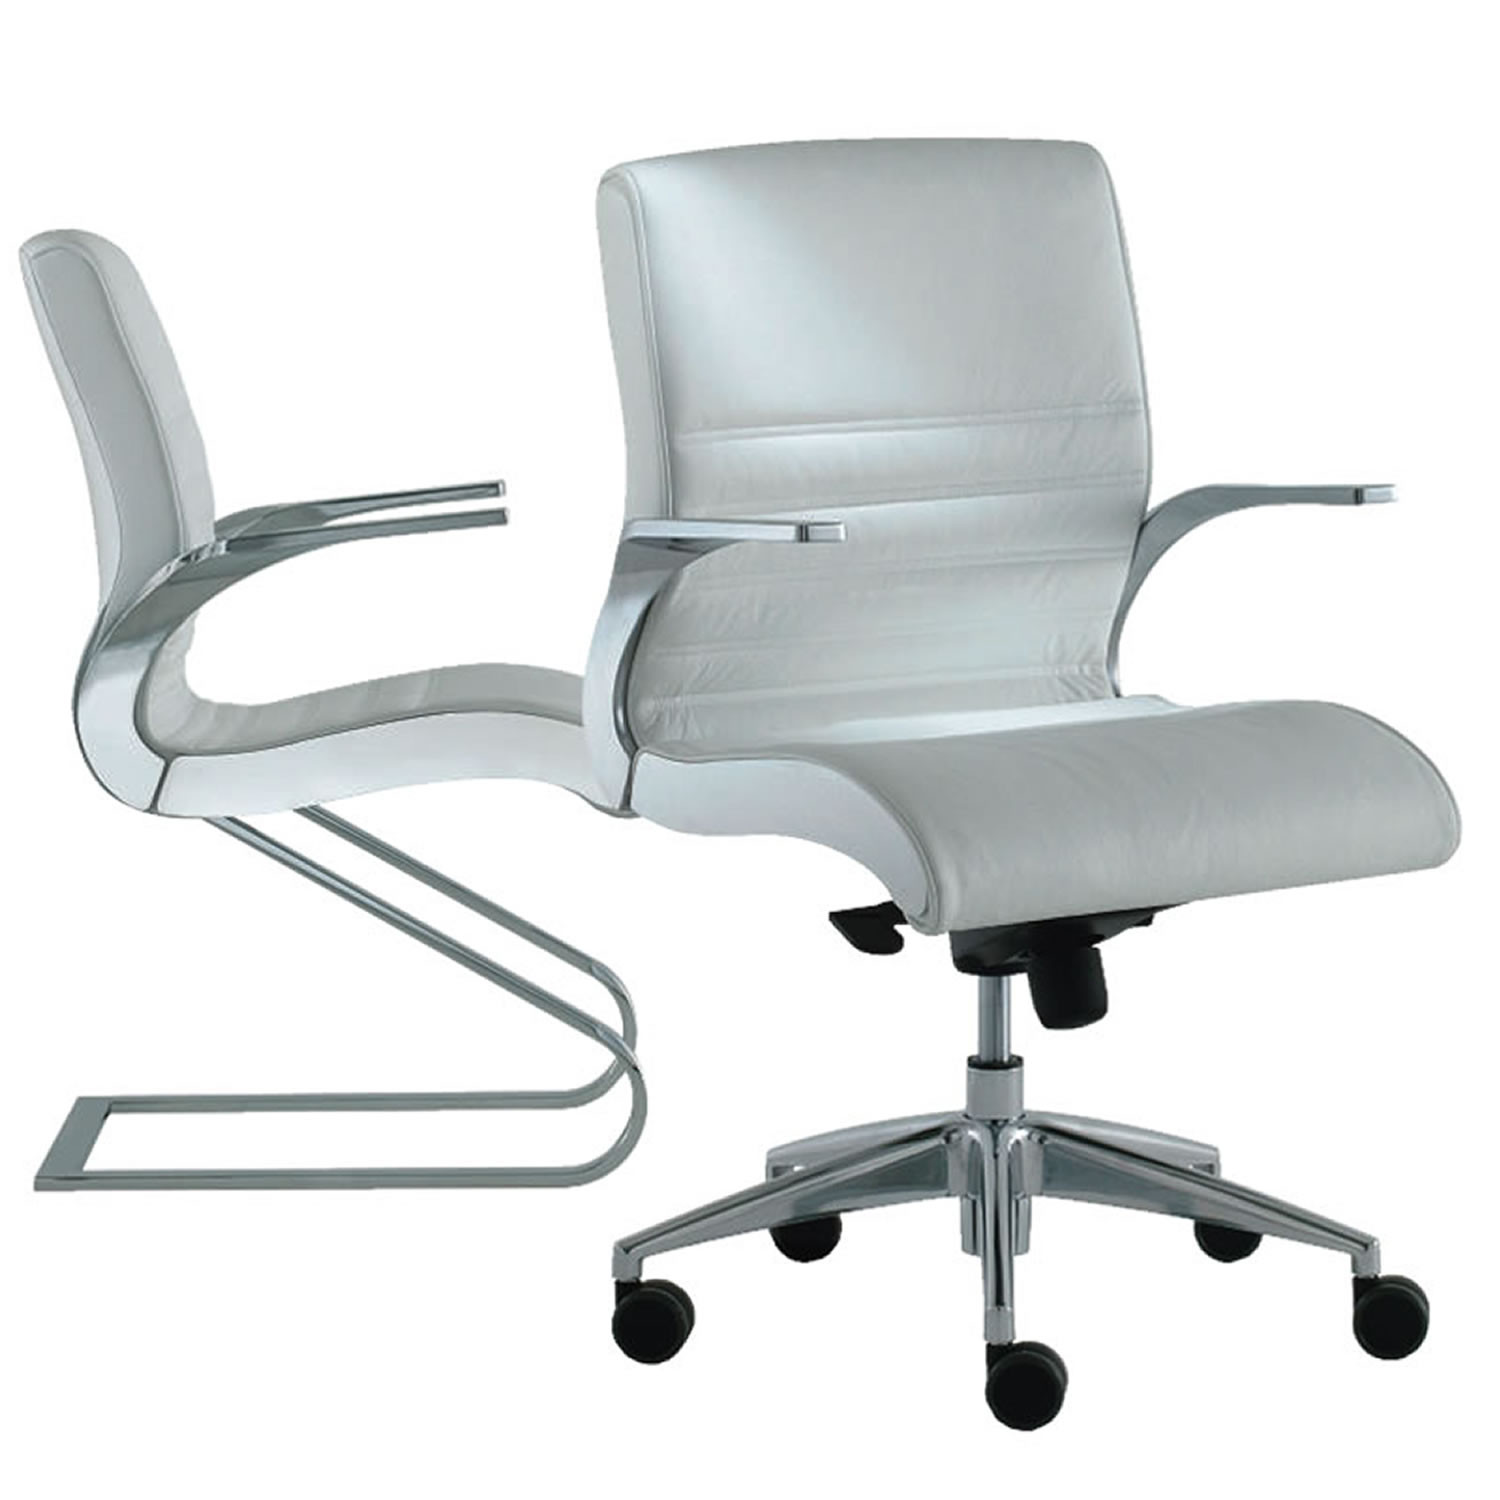 Pininfarina Designed Office Chairs Racechairs Takes You